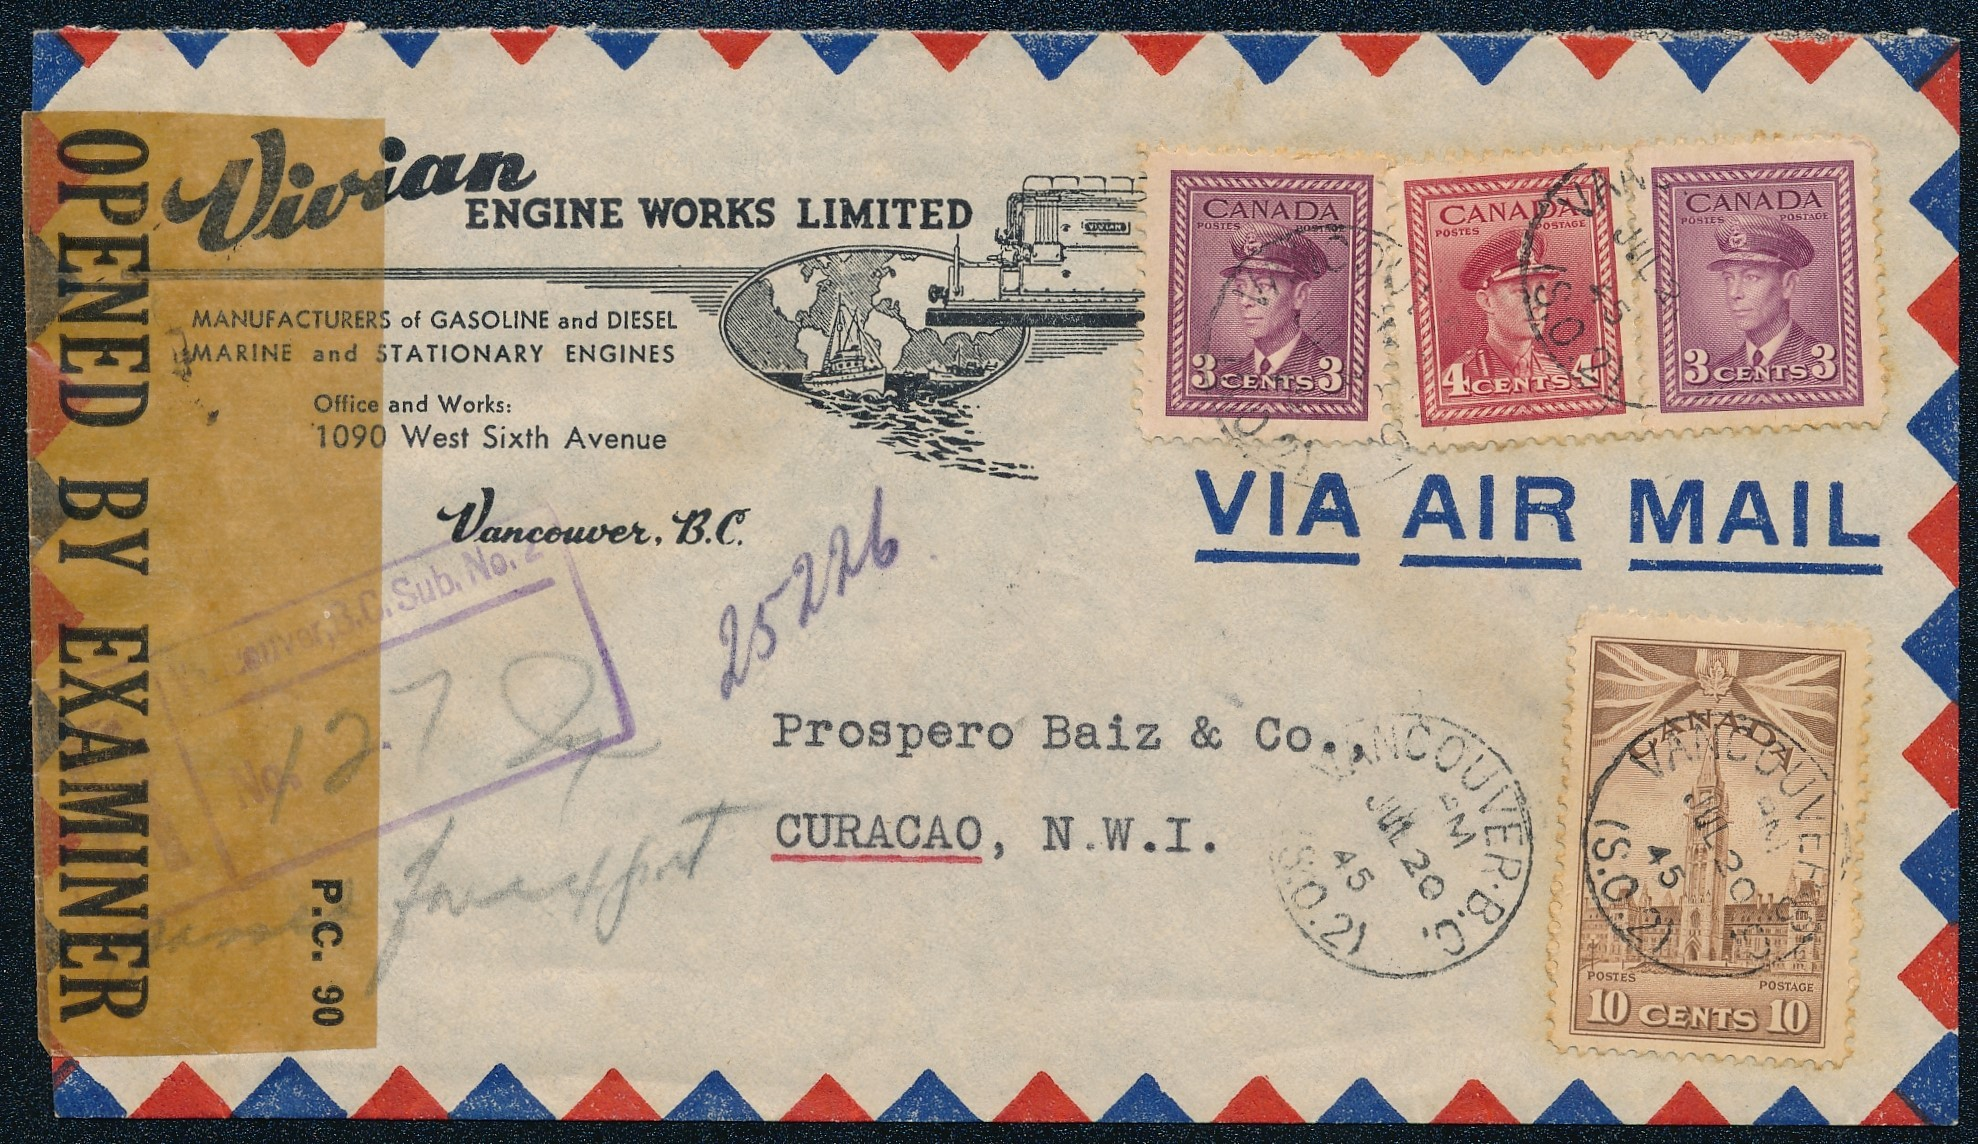 CANADA censored airmail cover 1945 to Curaçao CUR202